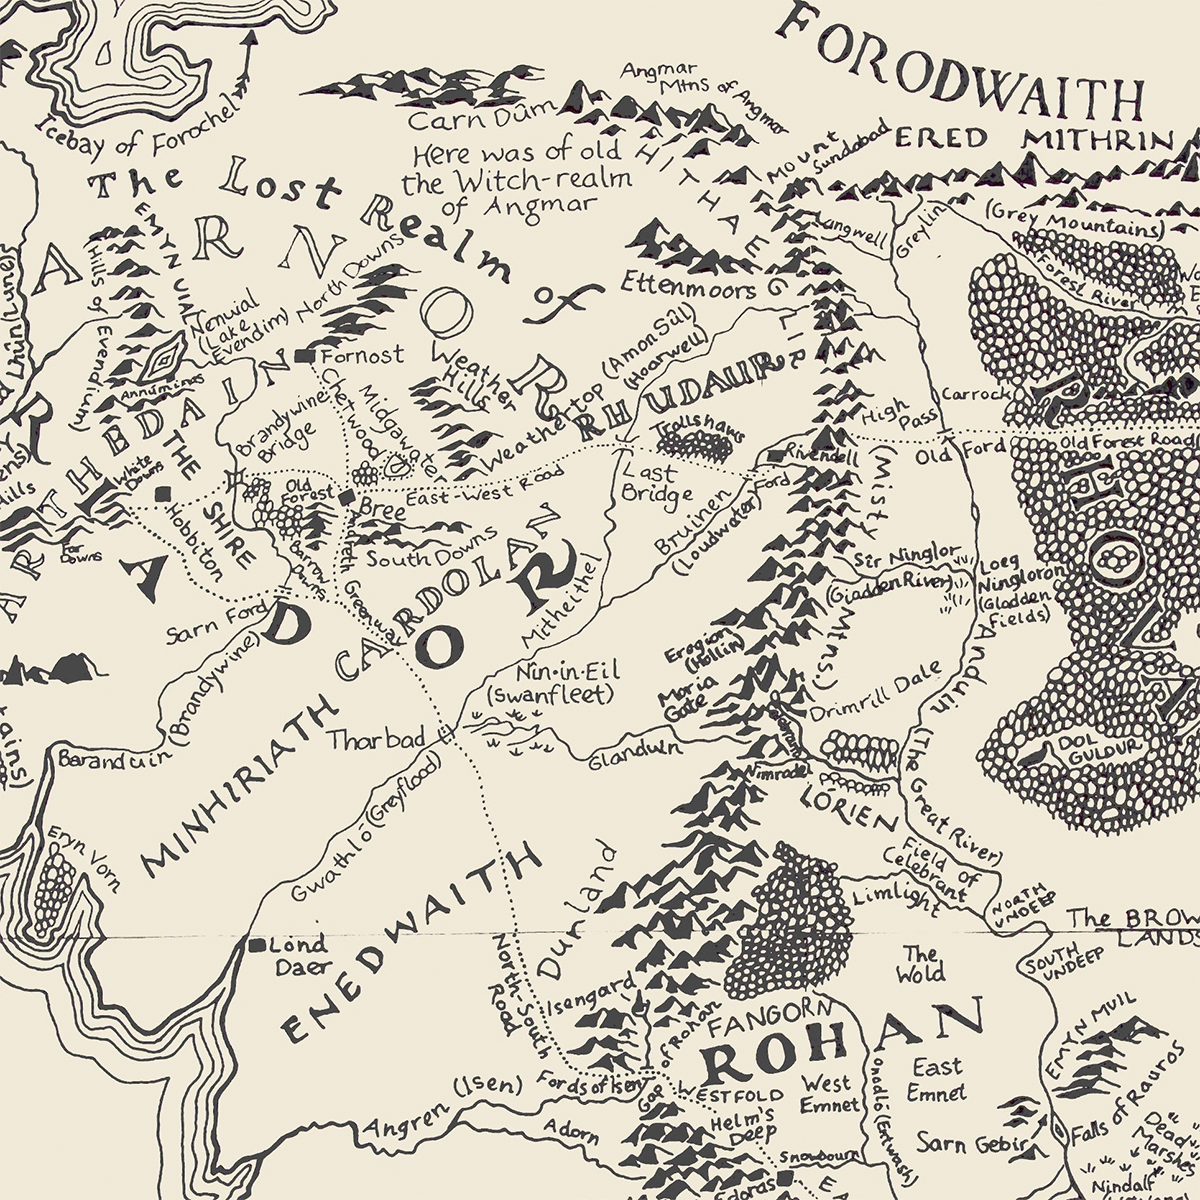 Map of Middle Earth by Pauline Baynes